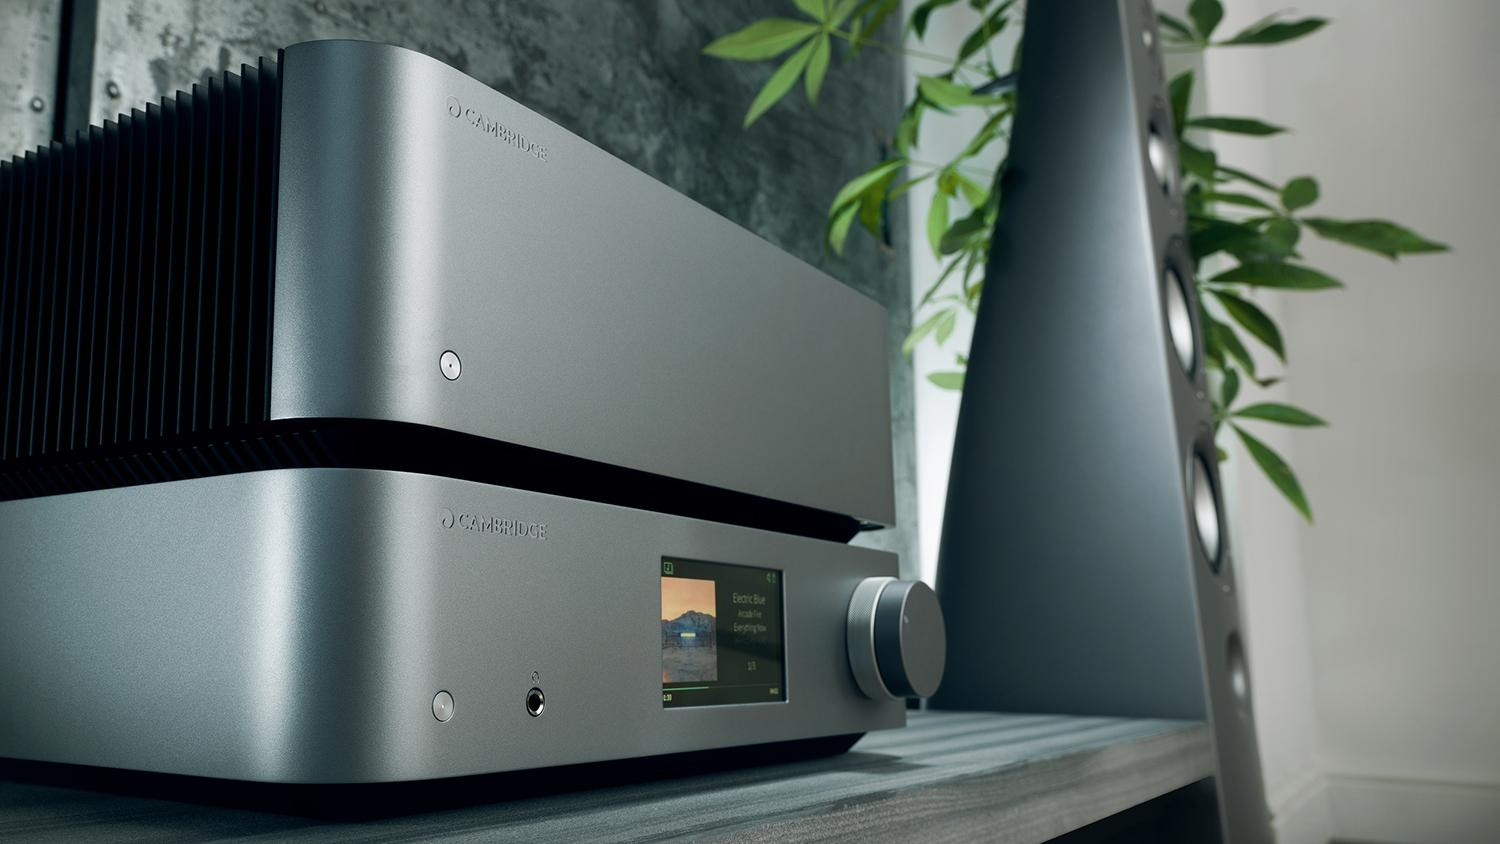 Edge W Power Amplifier and Edge NQ Network Player stack